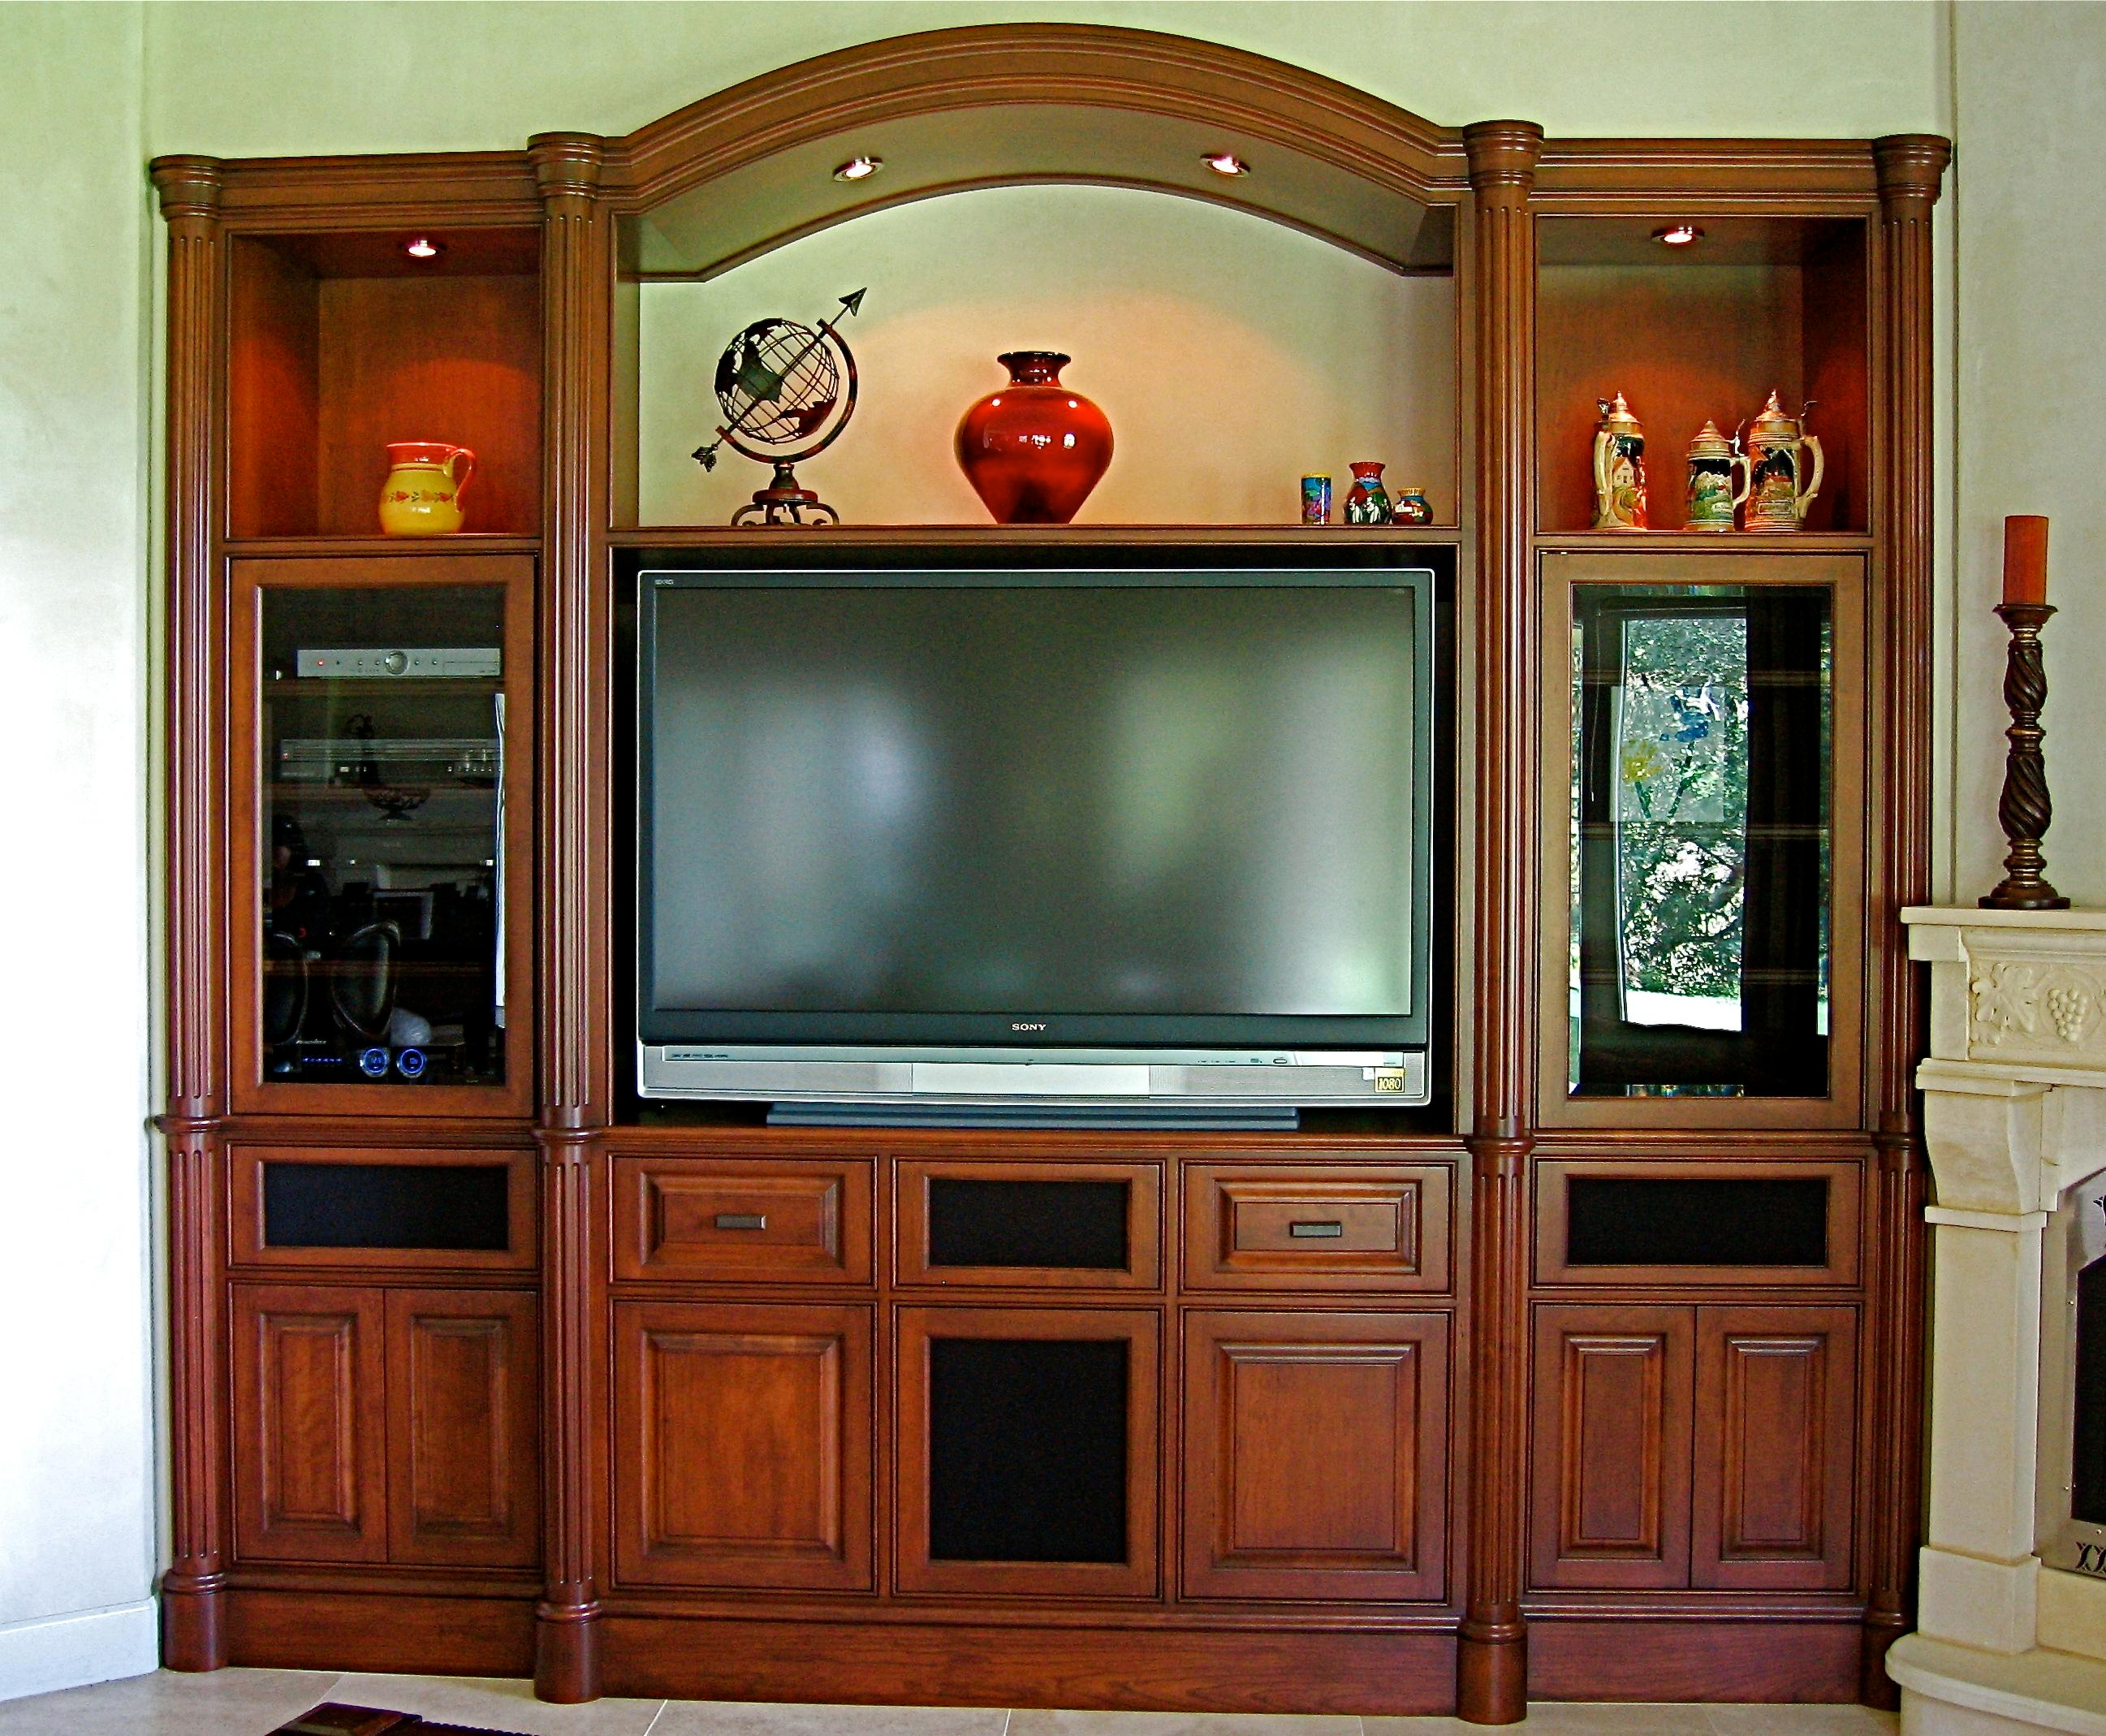 Custom Cherry built in media center designed and handcrafted by Philip Snyder of PS Woodworking features a graceful arch, round fluted columns, plinths and capitals, speakers behind cloth panels, custom one of a kind moldings and is the focal point of the great room.